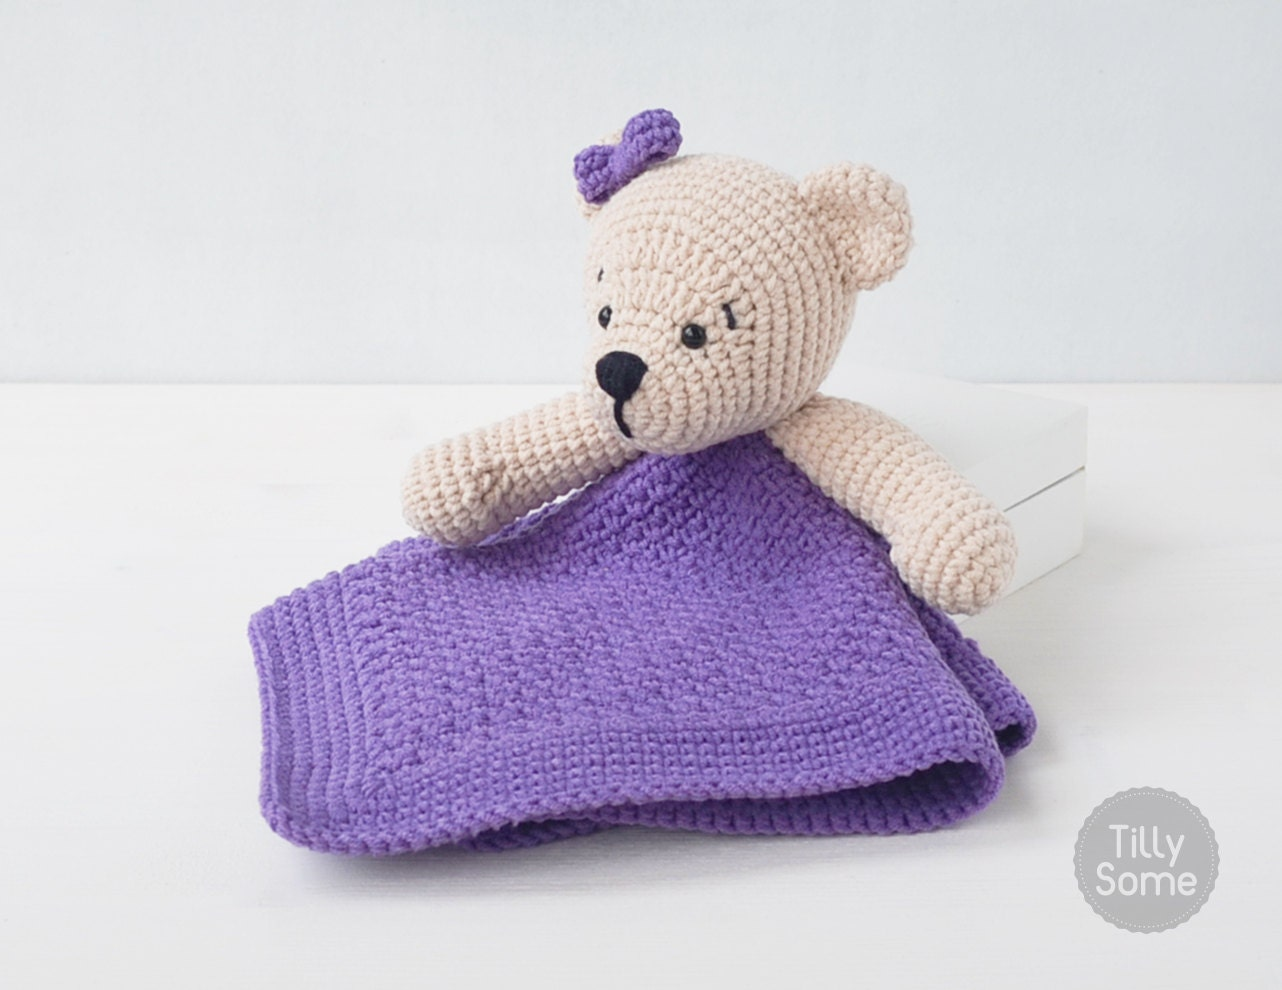 Teddy bear lovey pattern security blanket crochet lovey baby teddy bear lovey pattern security blanket crochet lovey baby lovey toy blanket toy lovey blanket pdf crochet pattern bankloansurffo Images